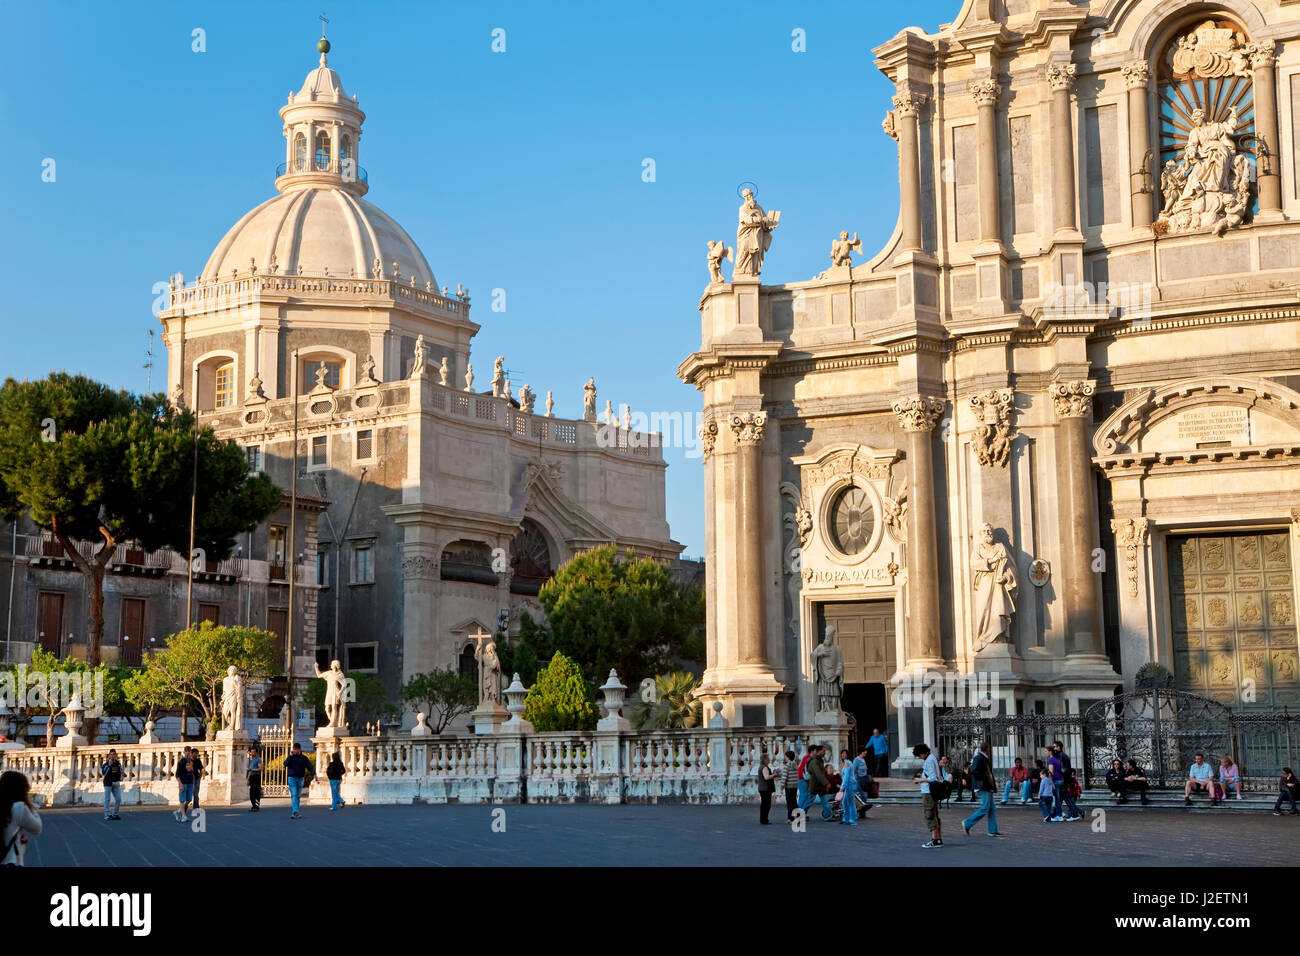 Exterior view of the Sant Agata Cathedral, Catania, Sicily, Italy - Stock Image